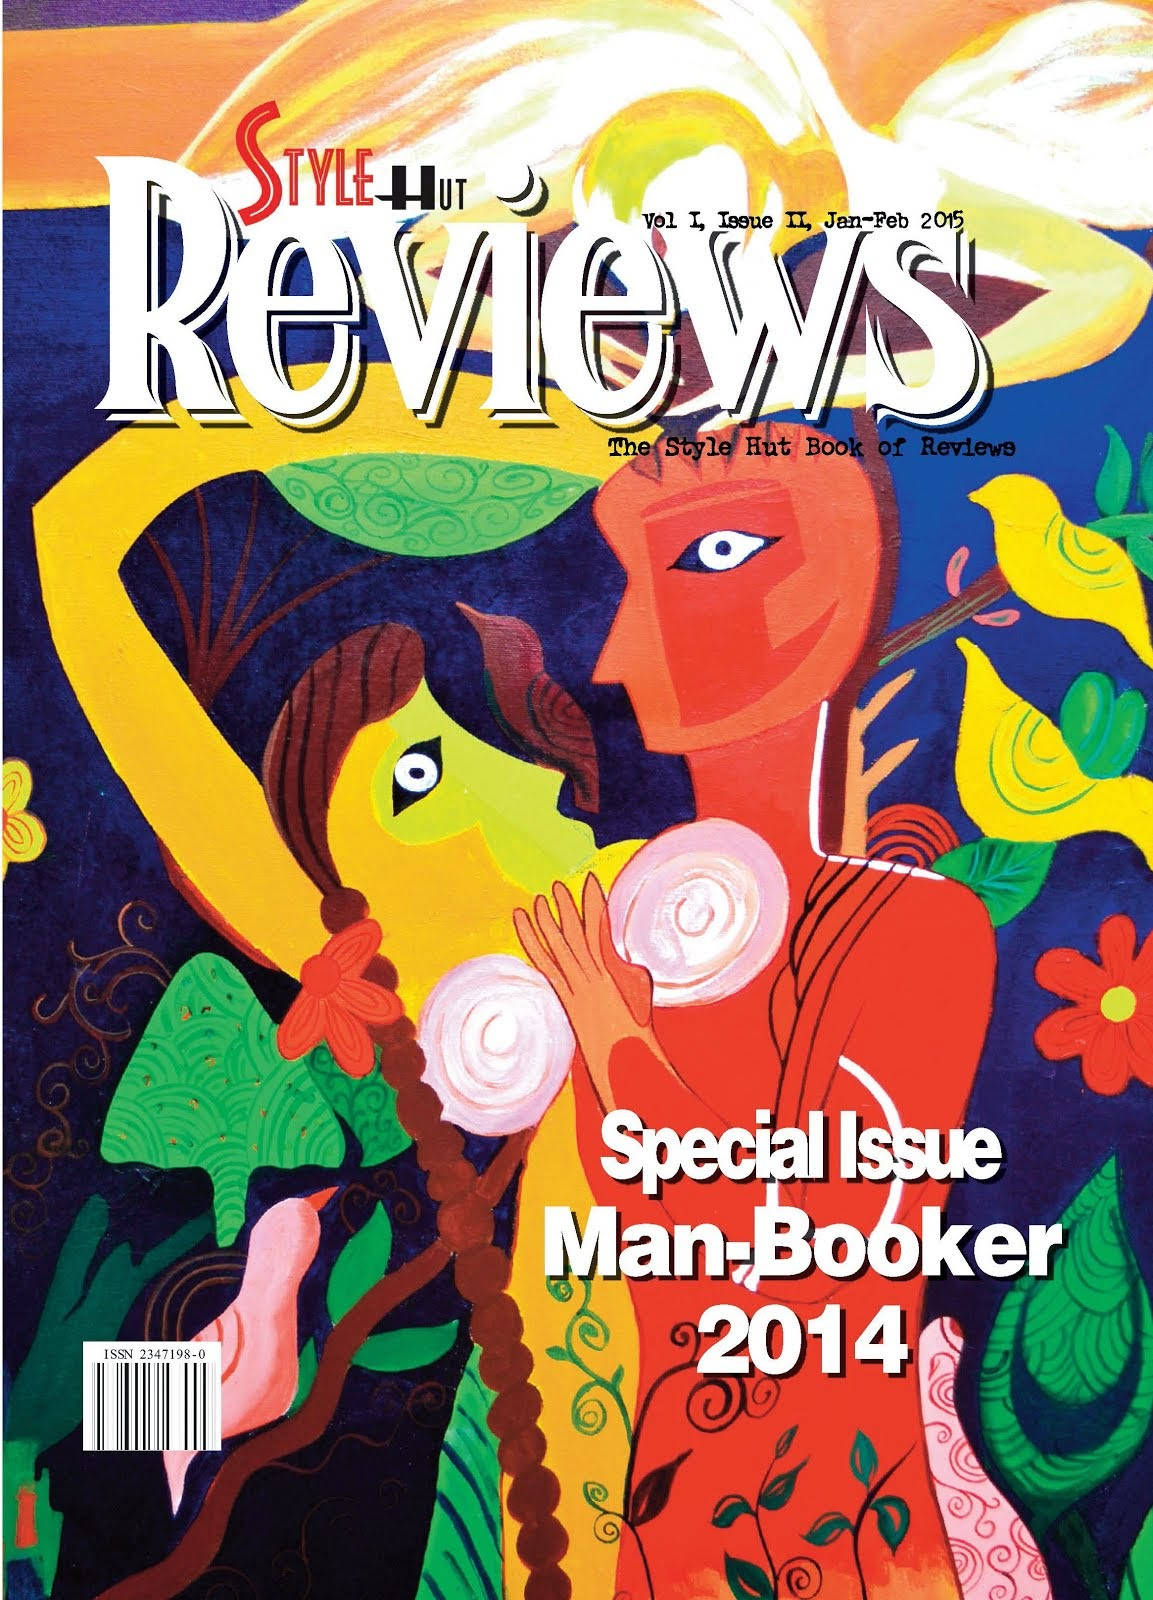 Reviews, Vol 1, Issue 2